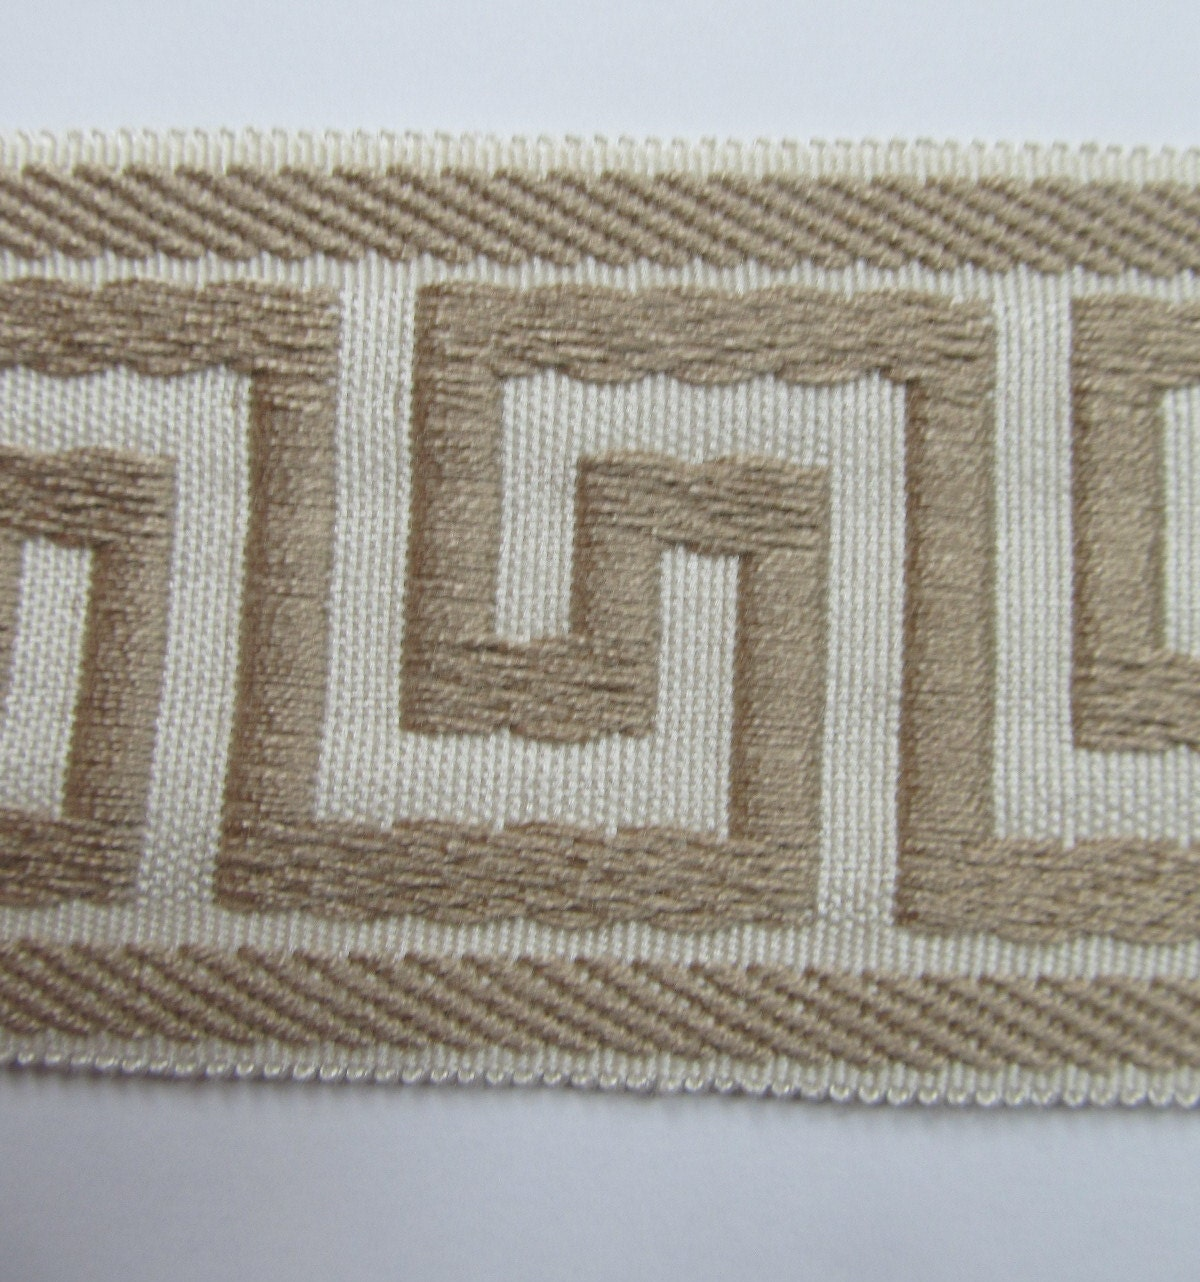 Items Similar To Greek Key Flat Trim For Your Drapes Pillows Ivory And Beige Inches Wide On